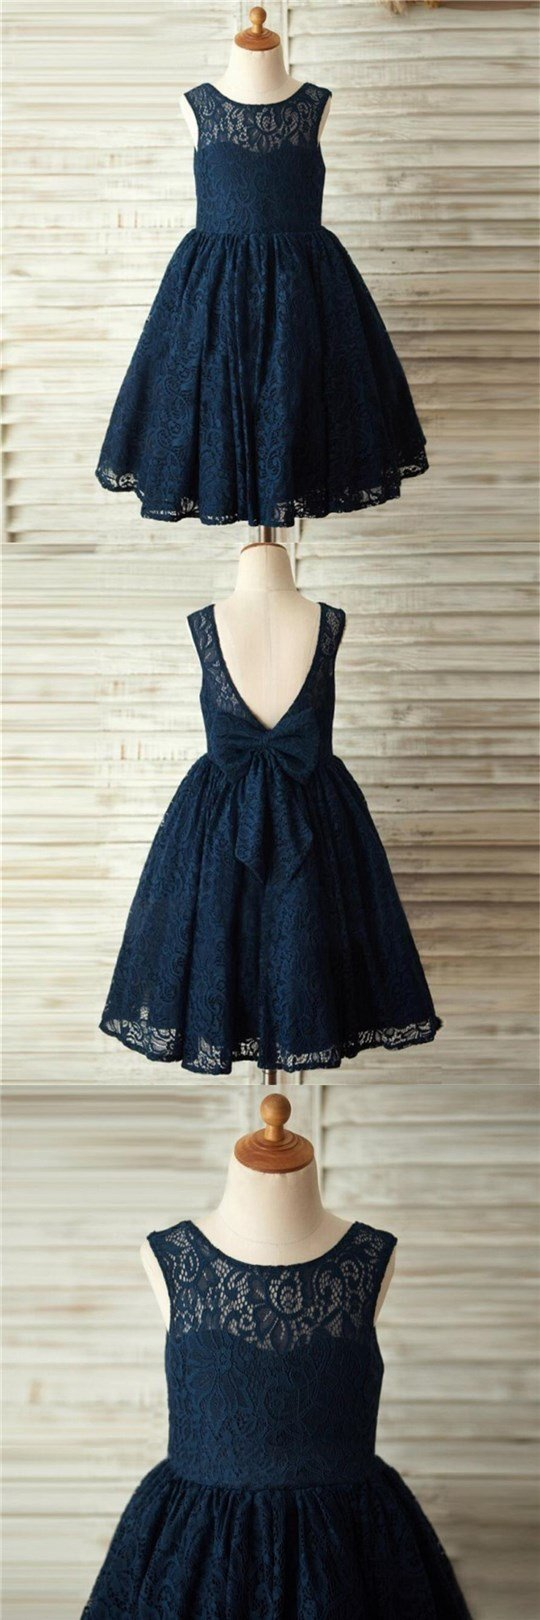 Navy Blue Lace Lovely Cute Flower Girl Dresses with bow , Junior Bridesmaid Dresses, FG084